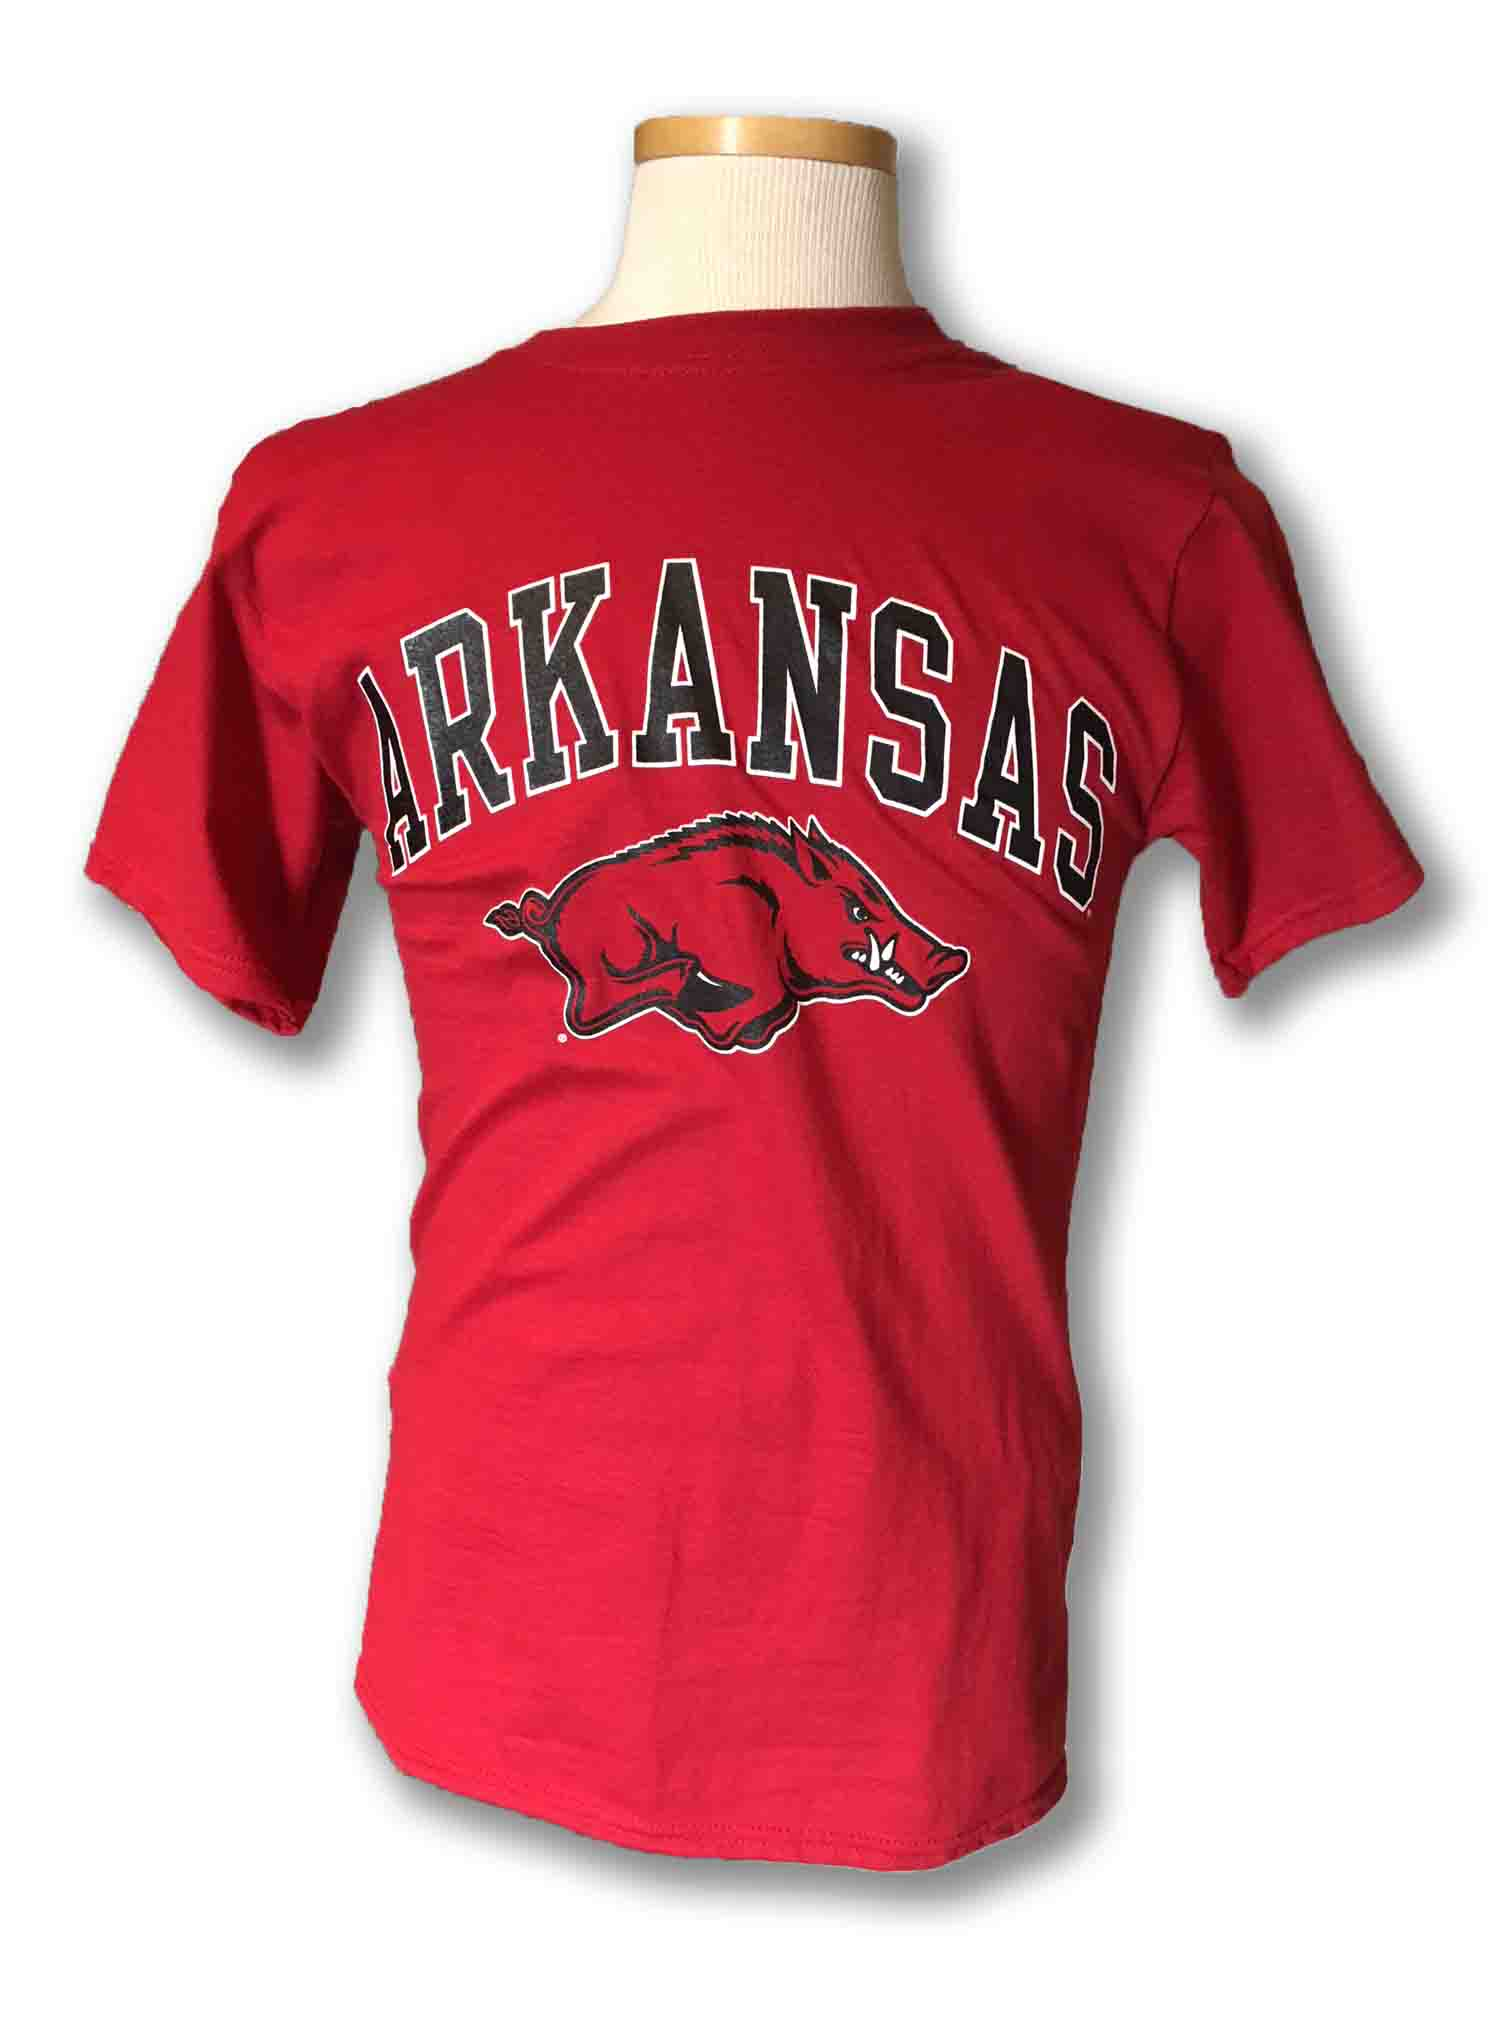 Arkansas Razorback Cotton Tee